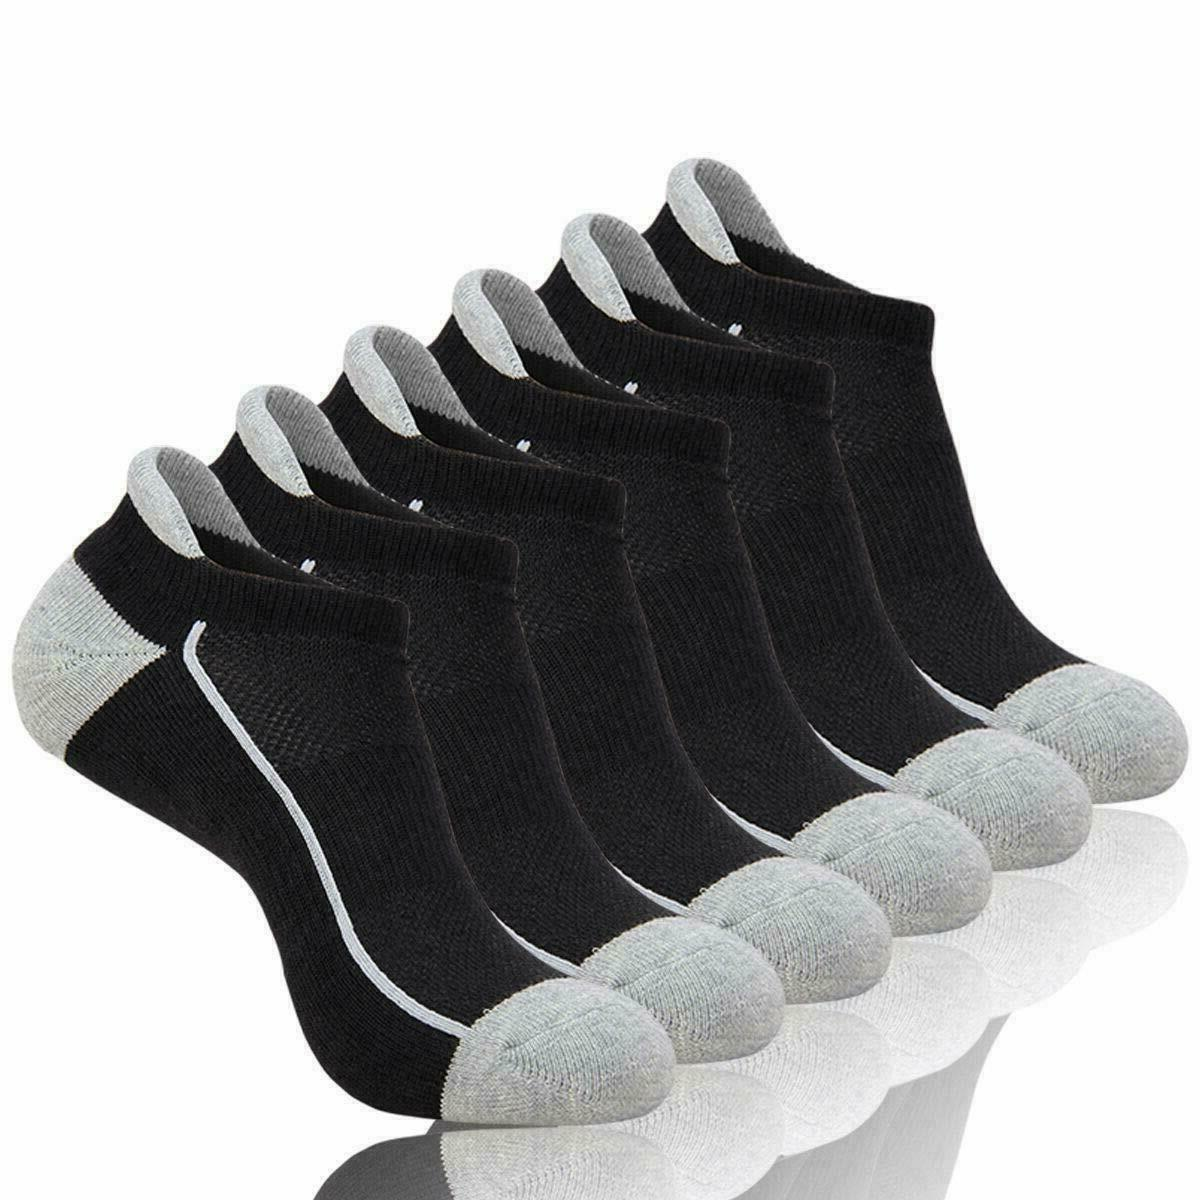 6 pairs mens athletic low cut ankle